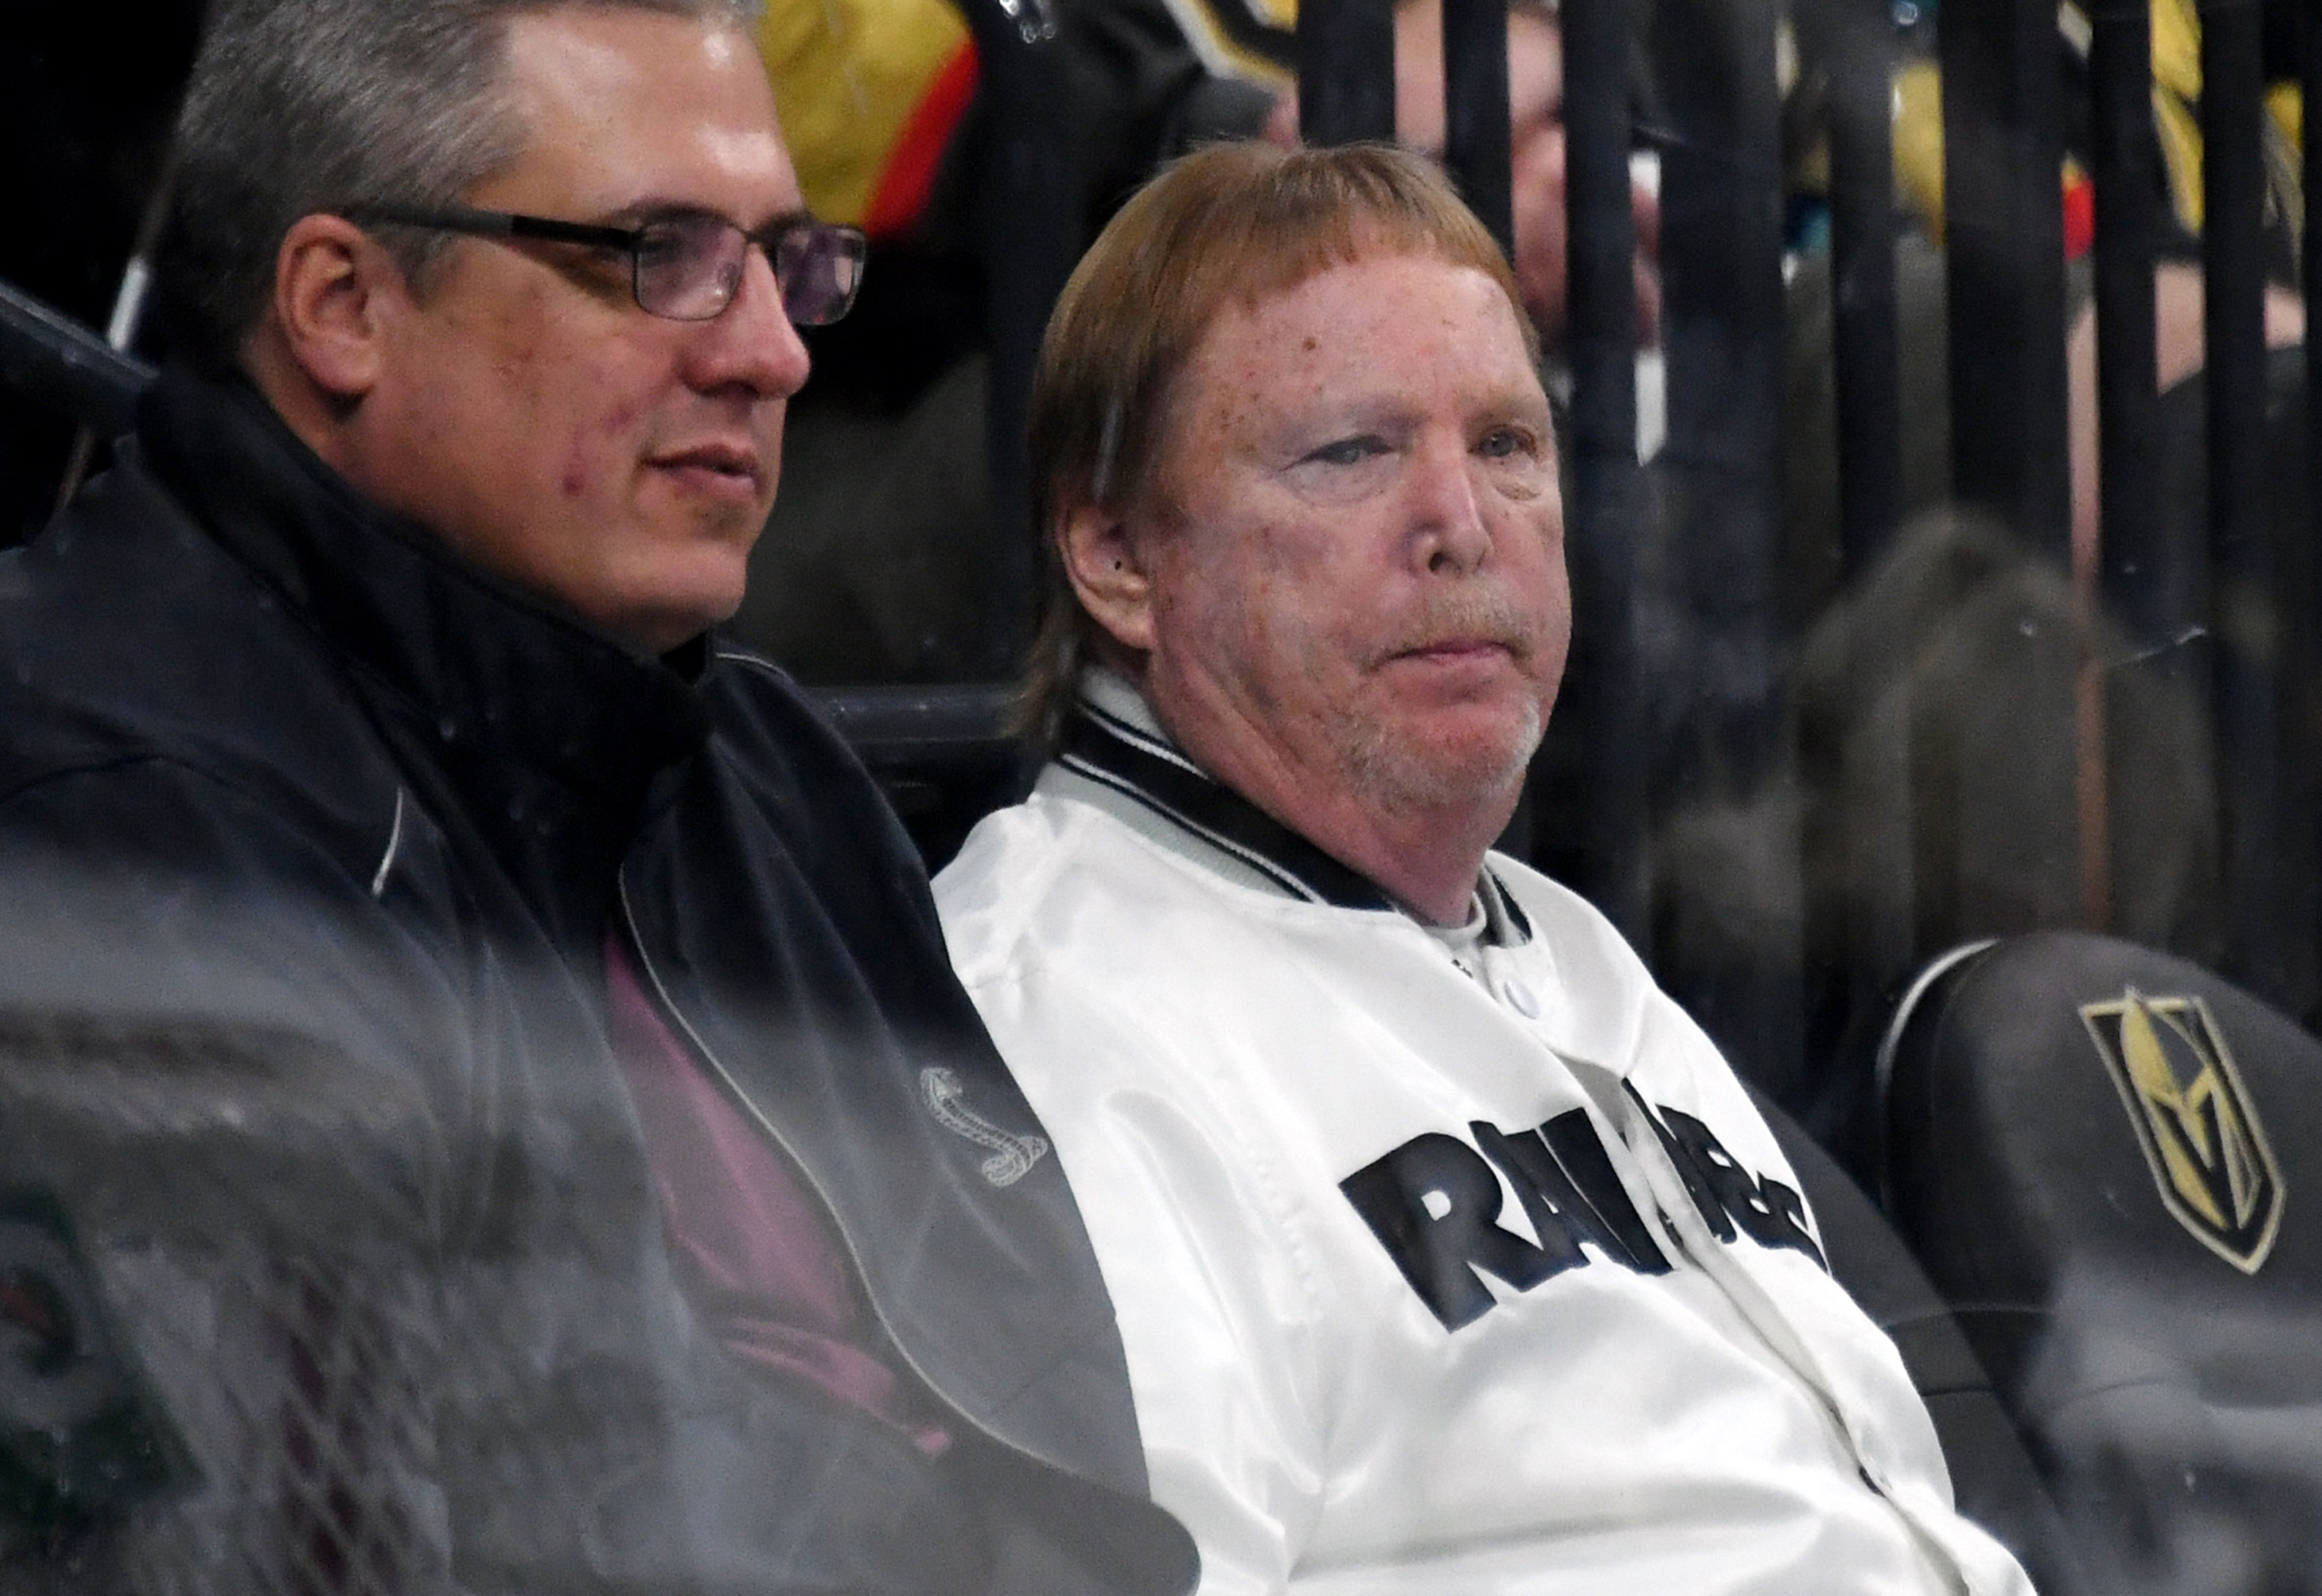 Raiders owner Mark Davis at a Golden Knights hockey game